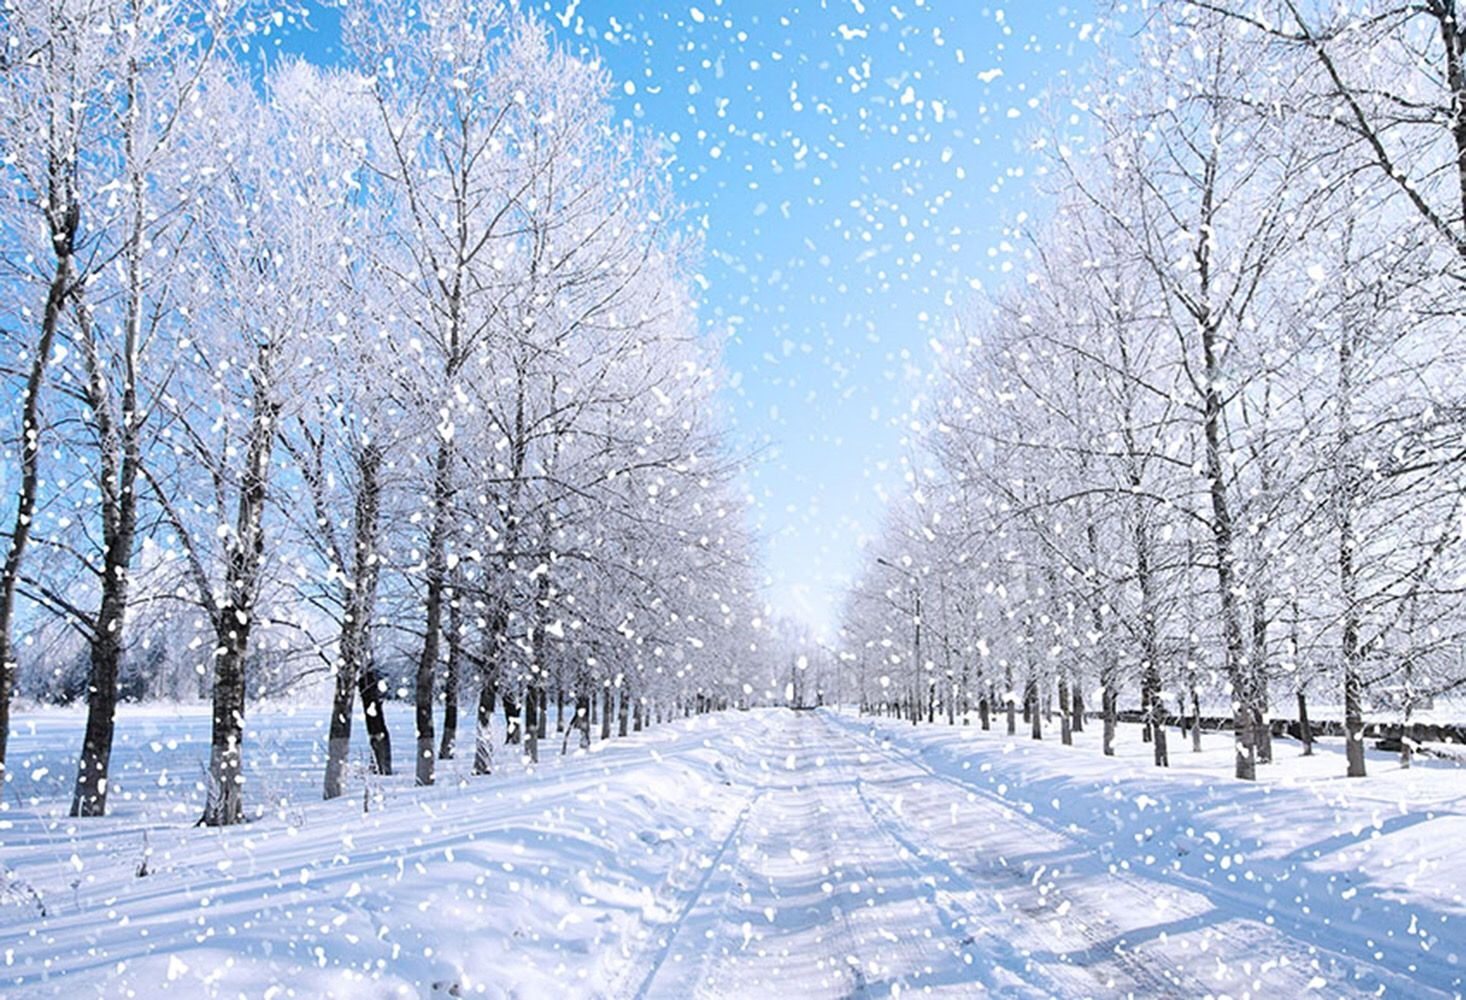 Snow Landscape Photograph Backdrops Winter Snow Flake Forest Trees Background For Picture Snowfall Wallpaper Scenery Photography Snow Pictures Hd wallpaper snow winter nature branches